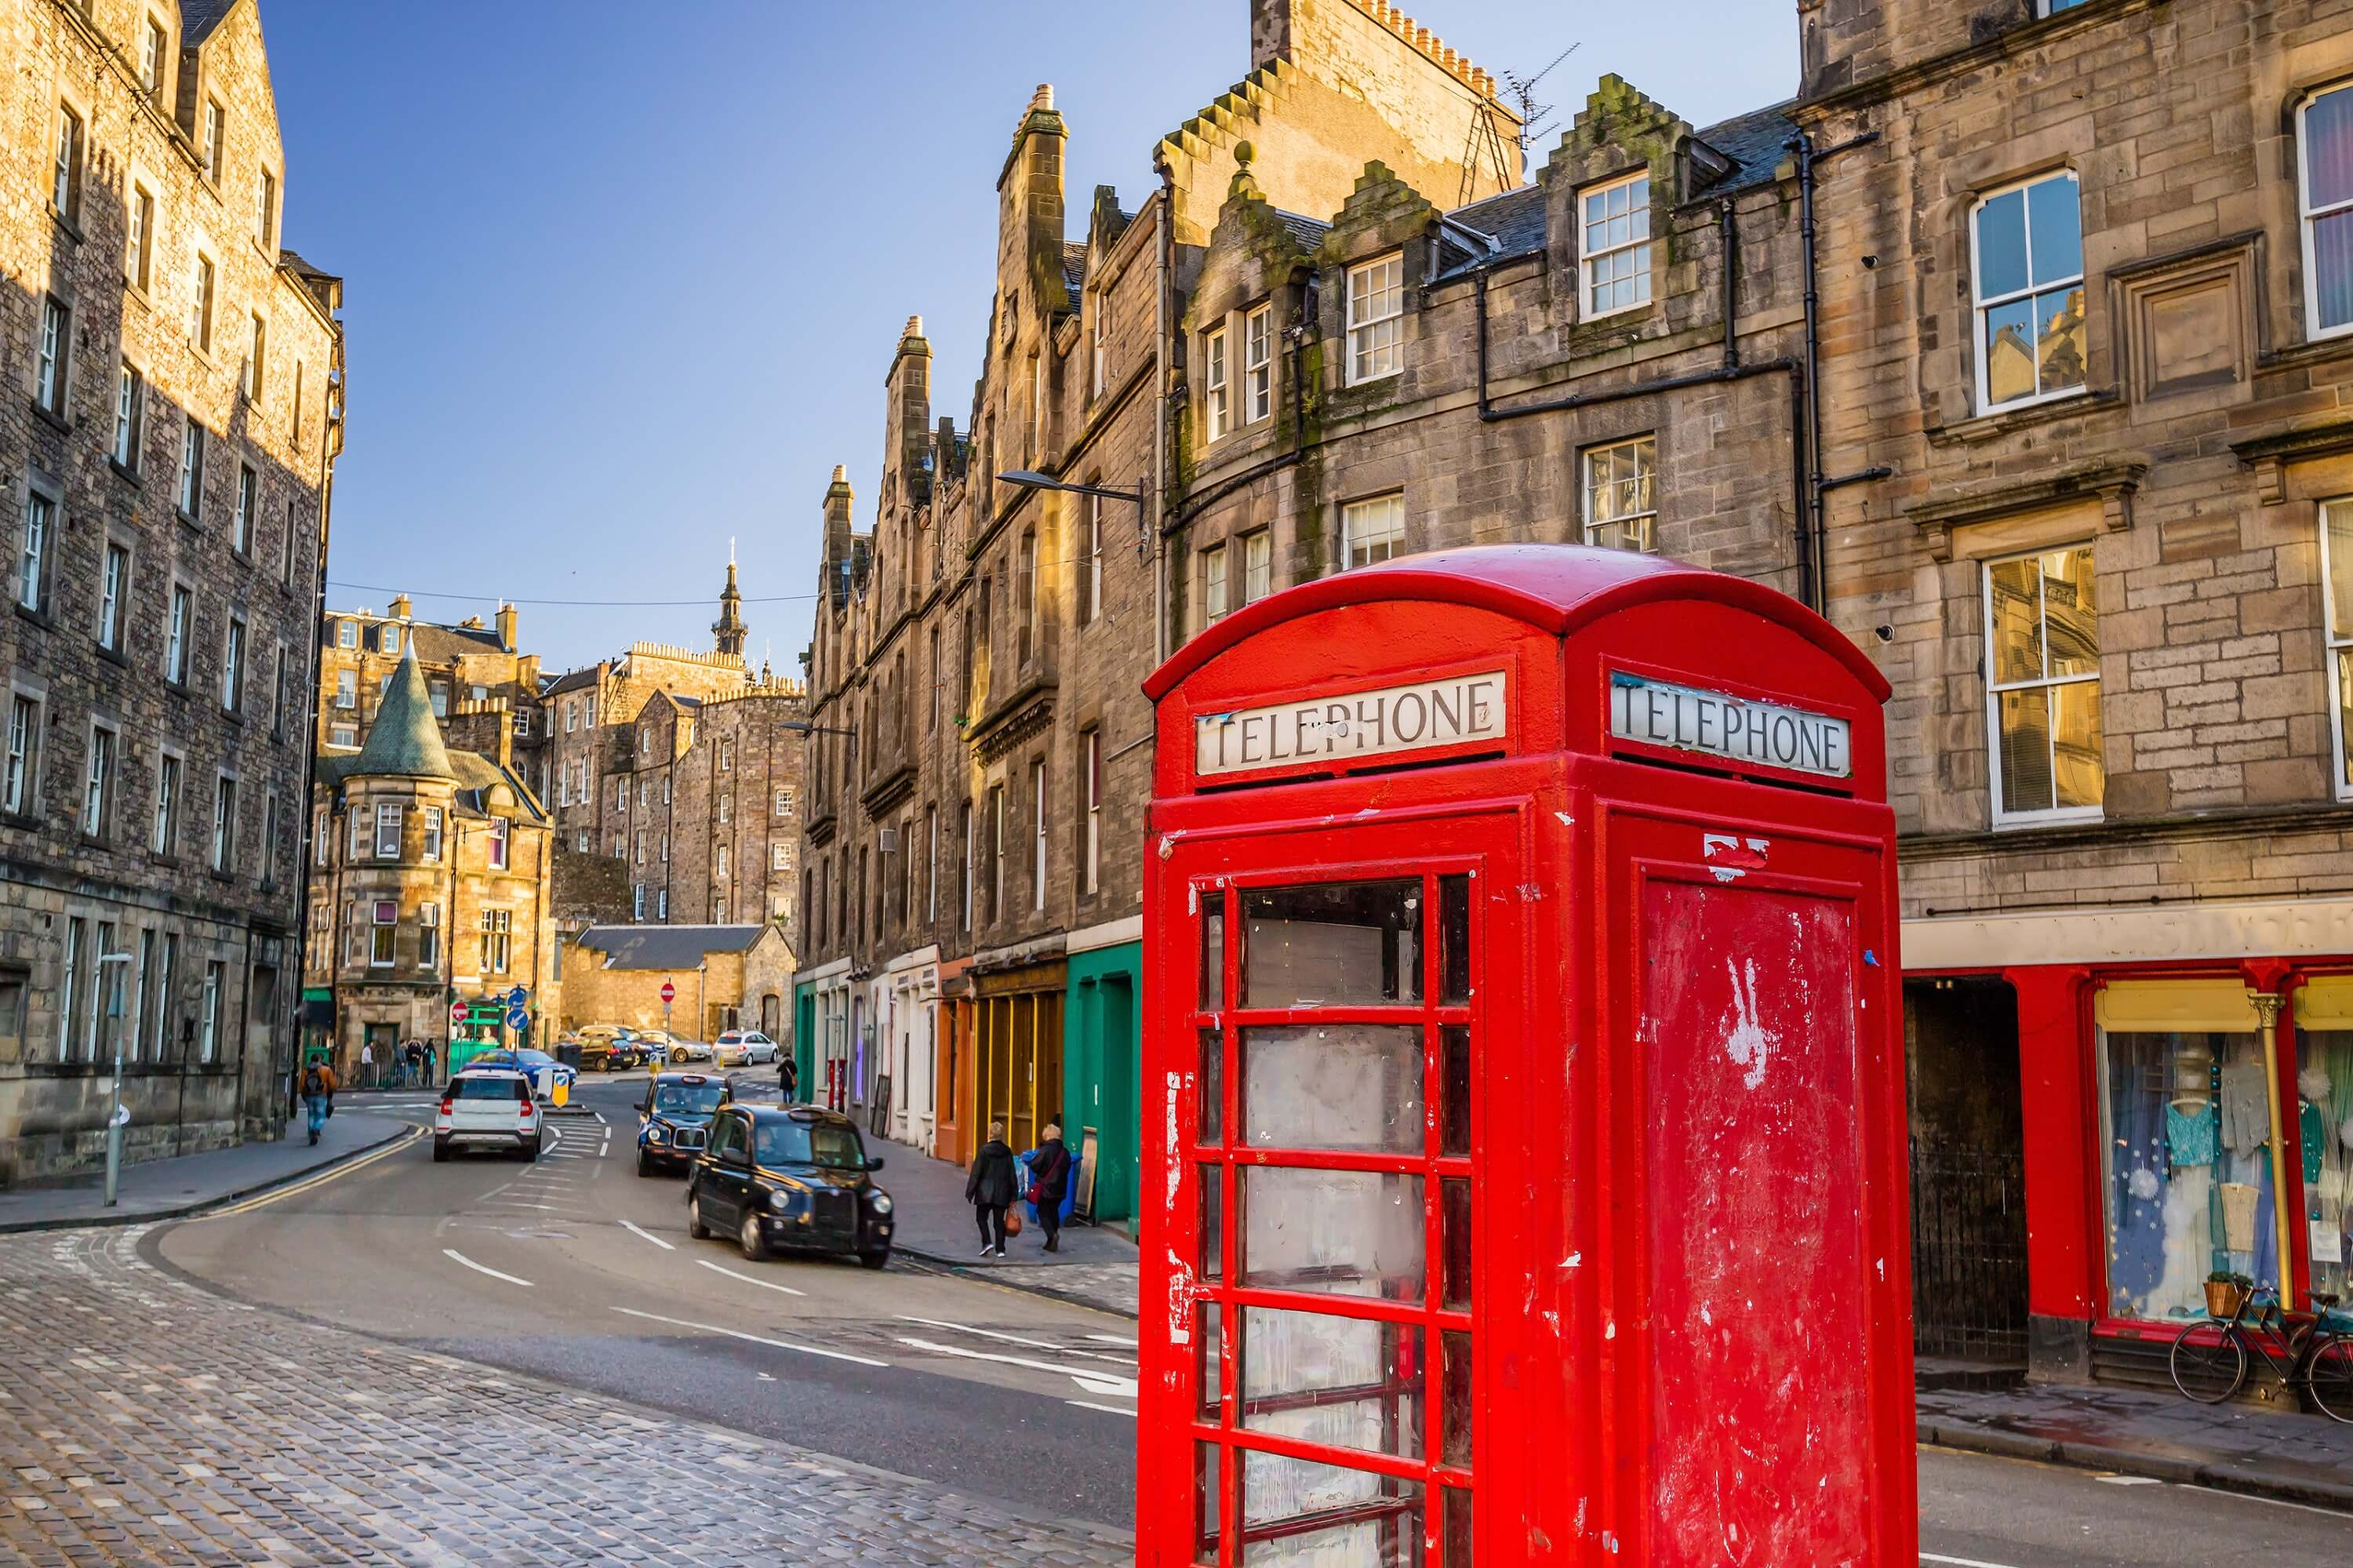 7 day Edinburgh itinerary for female solo travelers - The Royal Mile